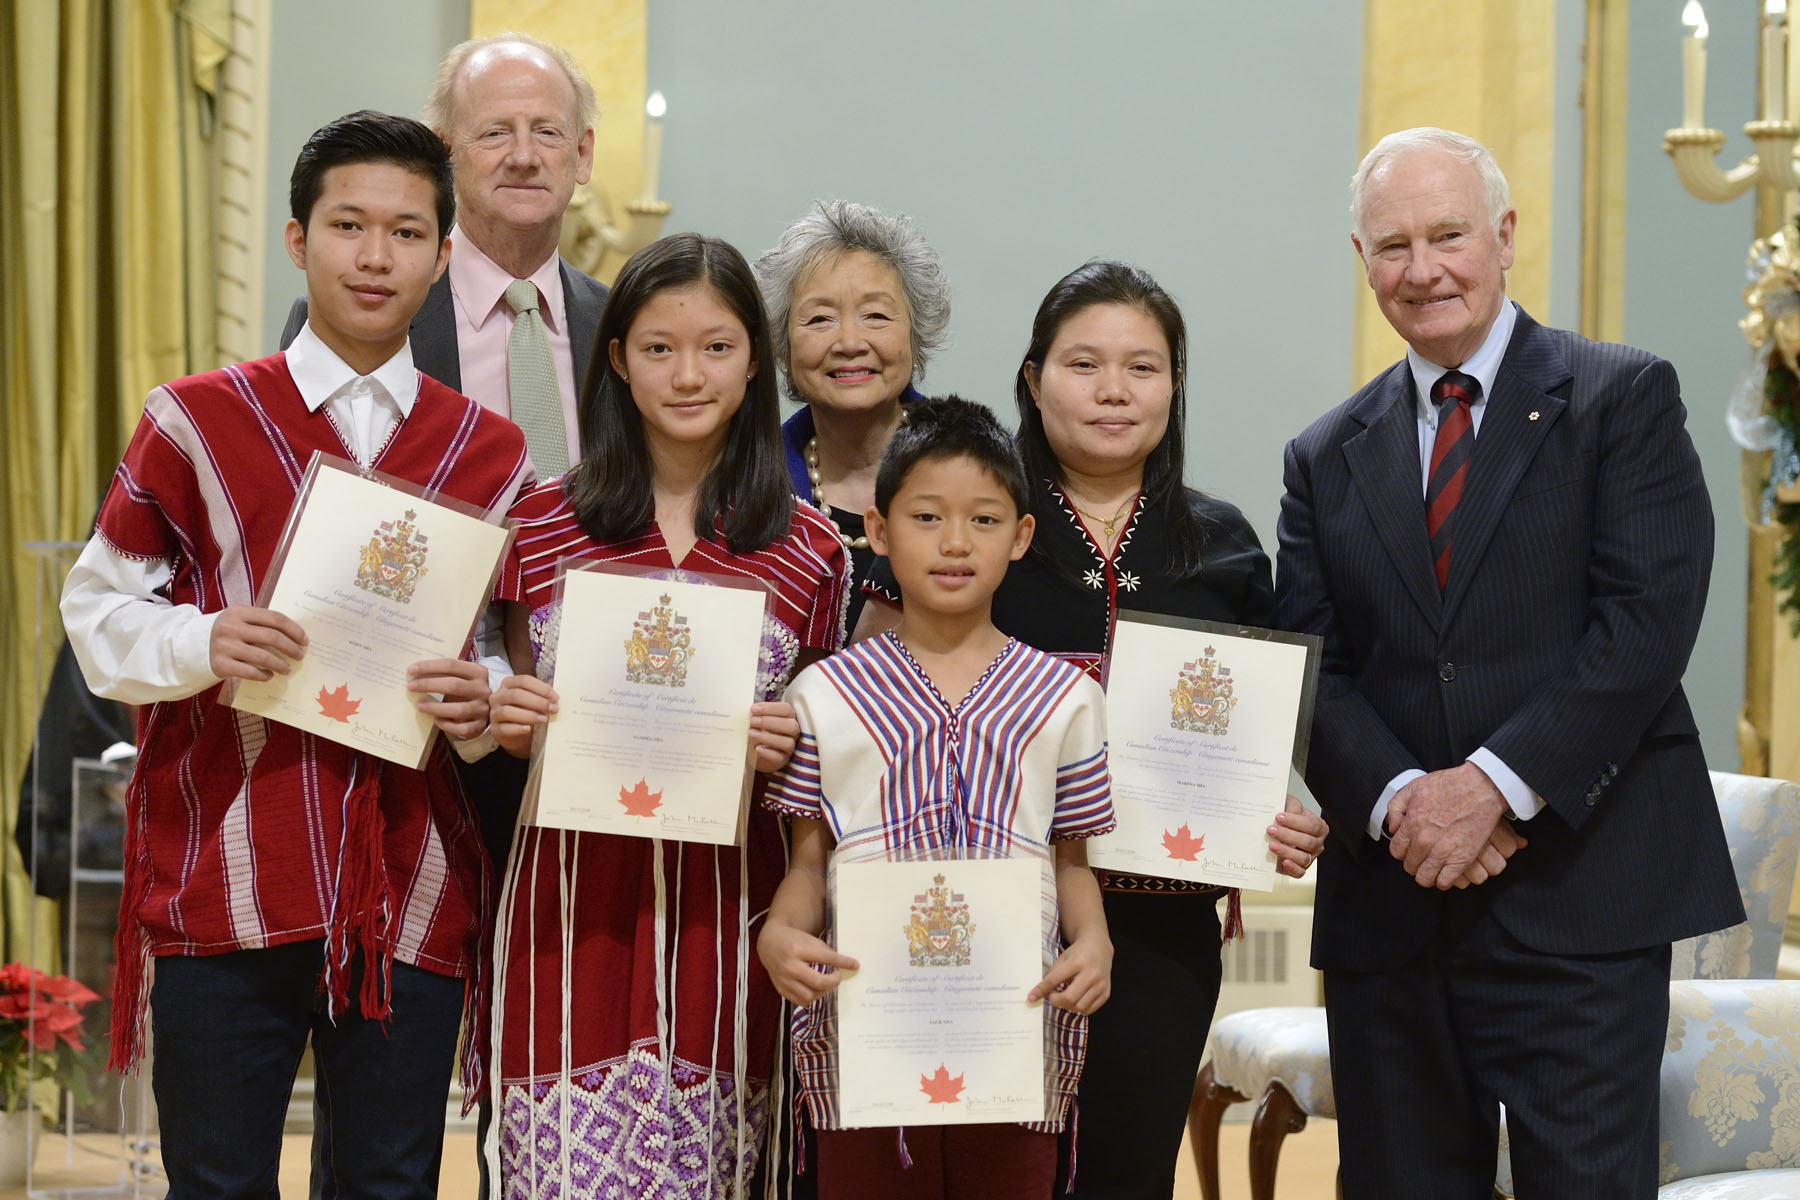 A family of new Canadians received their citizenship certificate.